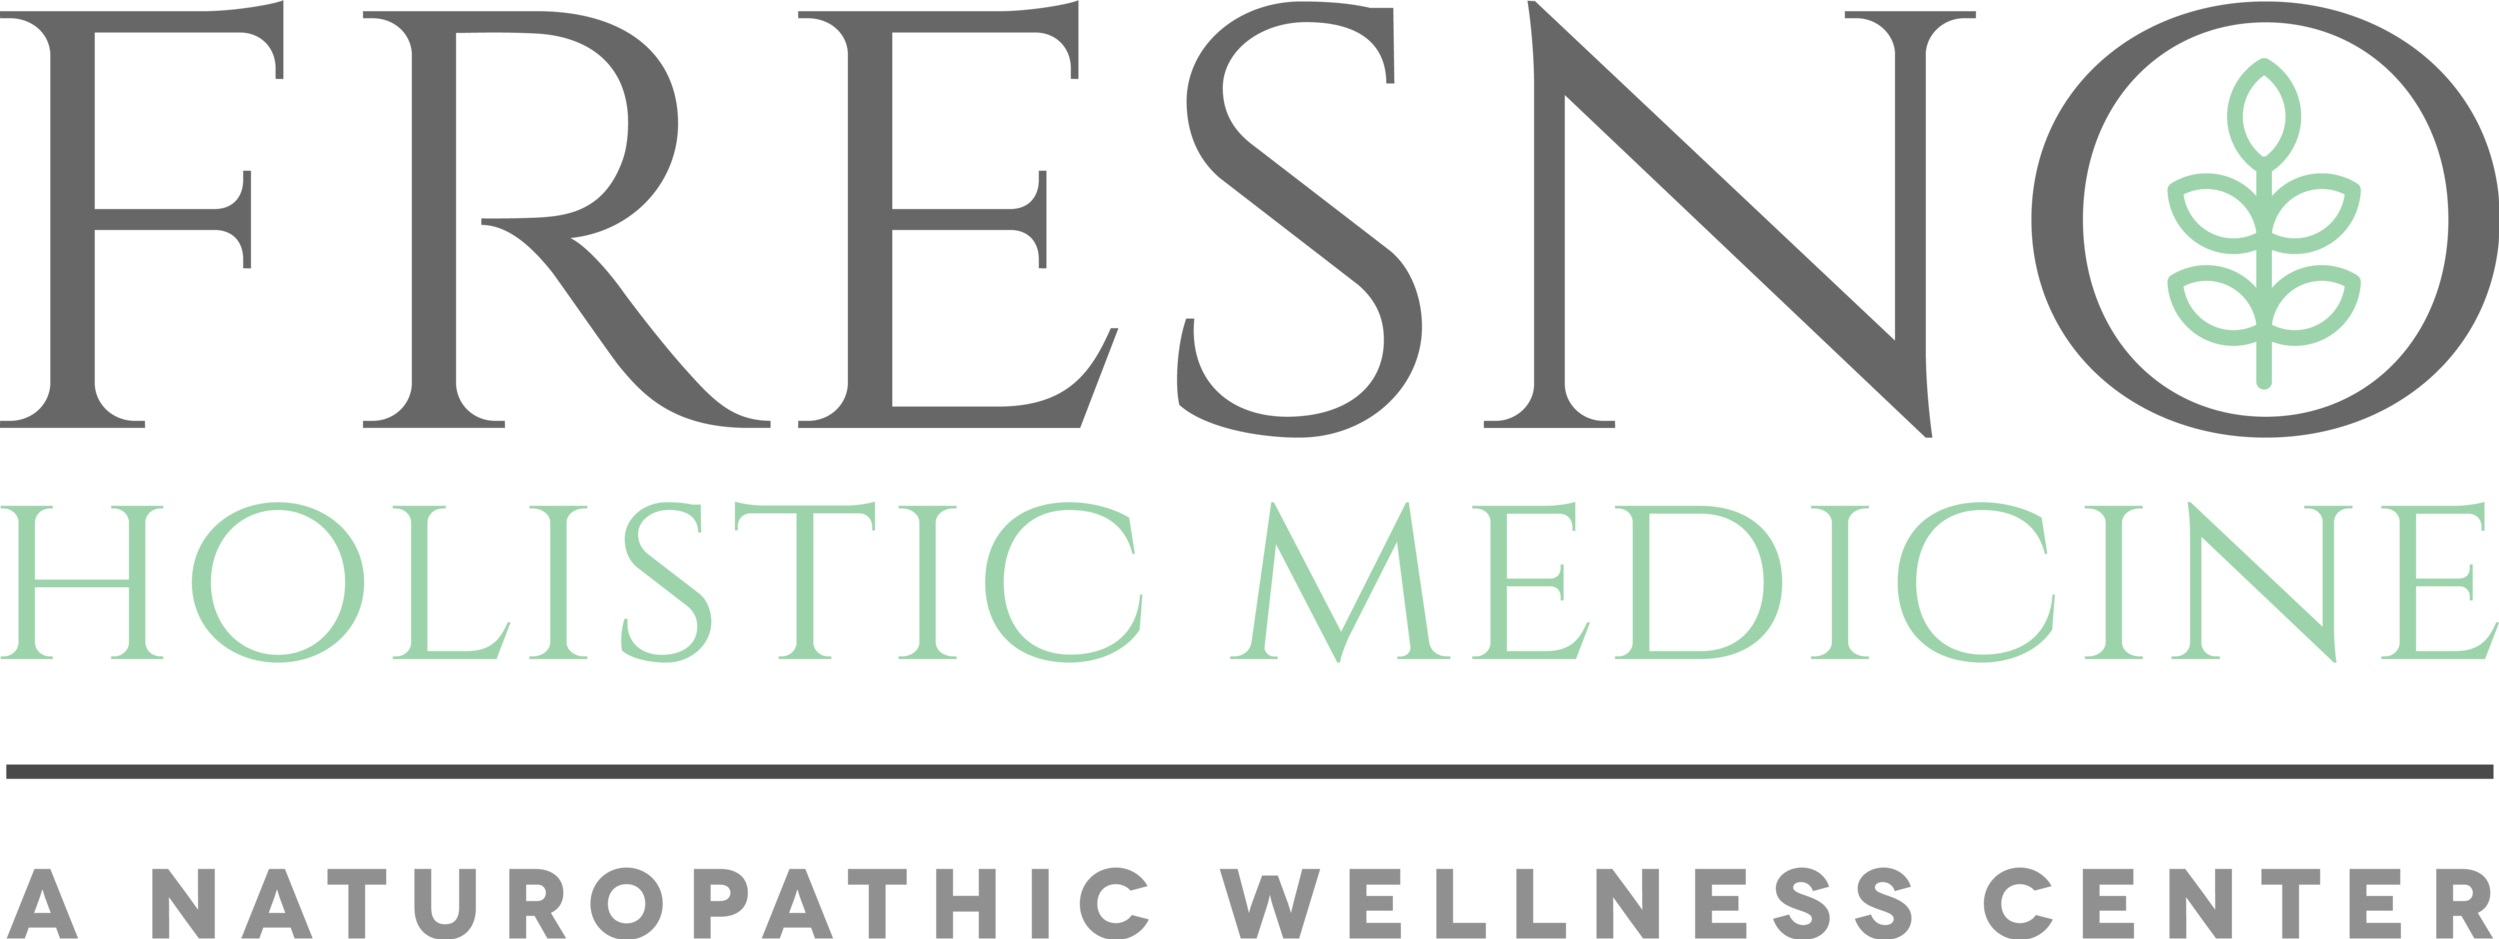 Founding sponsor - Fresno Holistic MedicineStart-up costs as well as an annual pledge was provided. For more about this practice, visit www.fresnoholisticmedicine.com